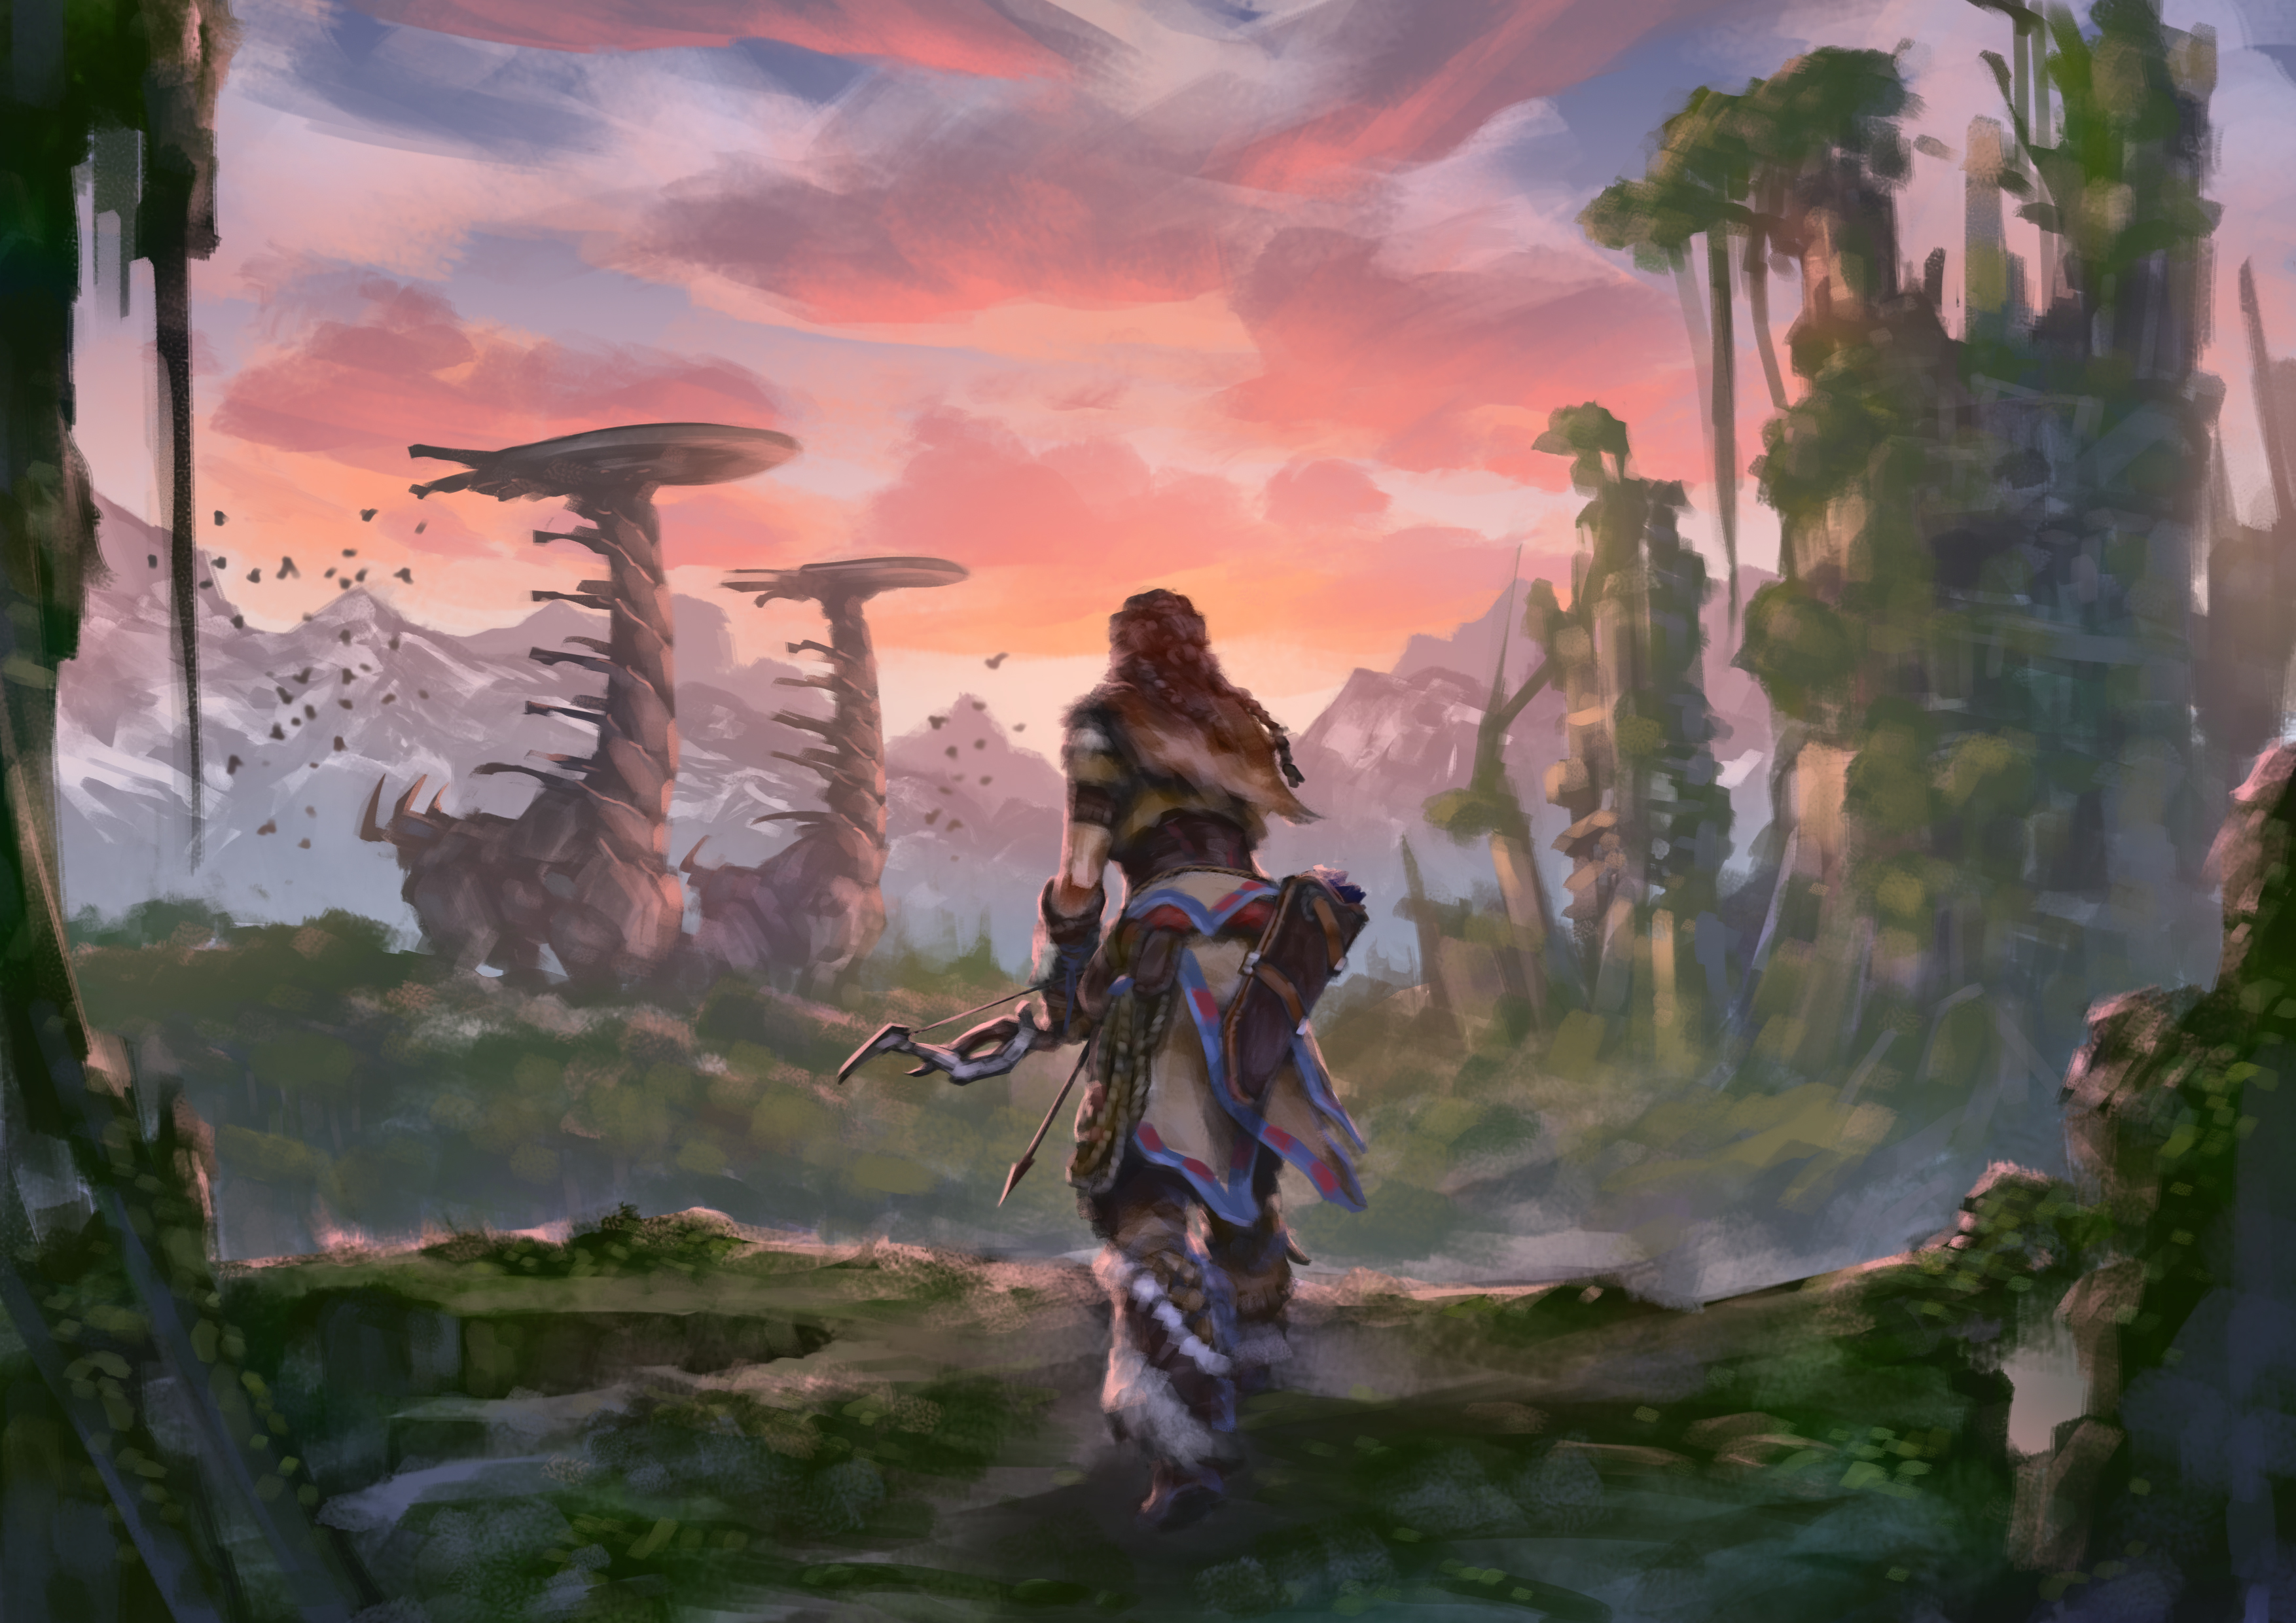 Aloy horizon zero dawn artwork 4k hd games 4k wallpapers - Horizon zero dawn android wallpaper ...